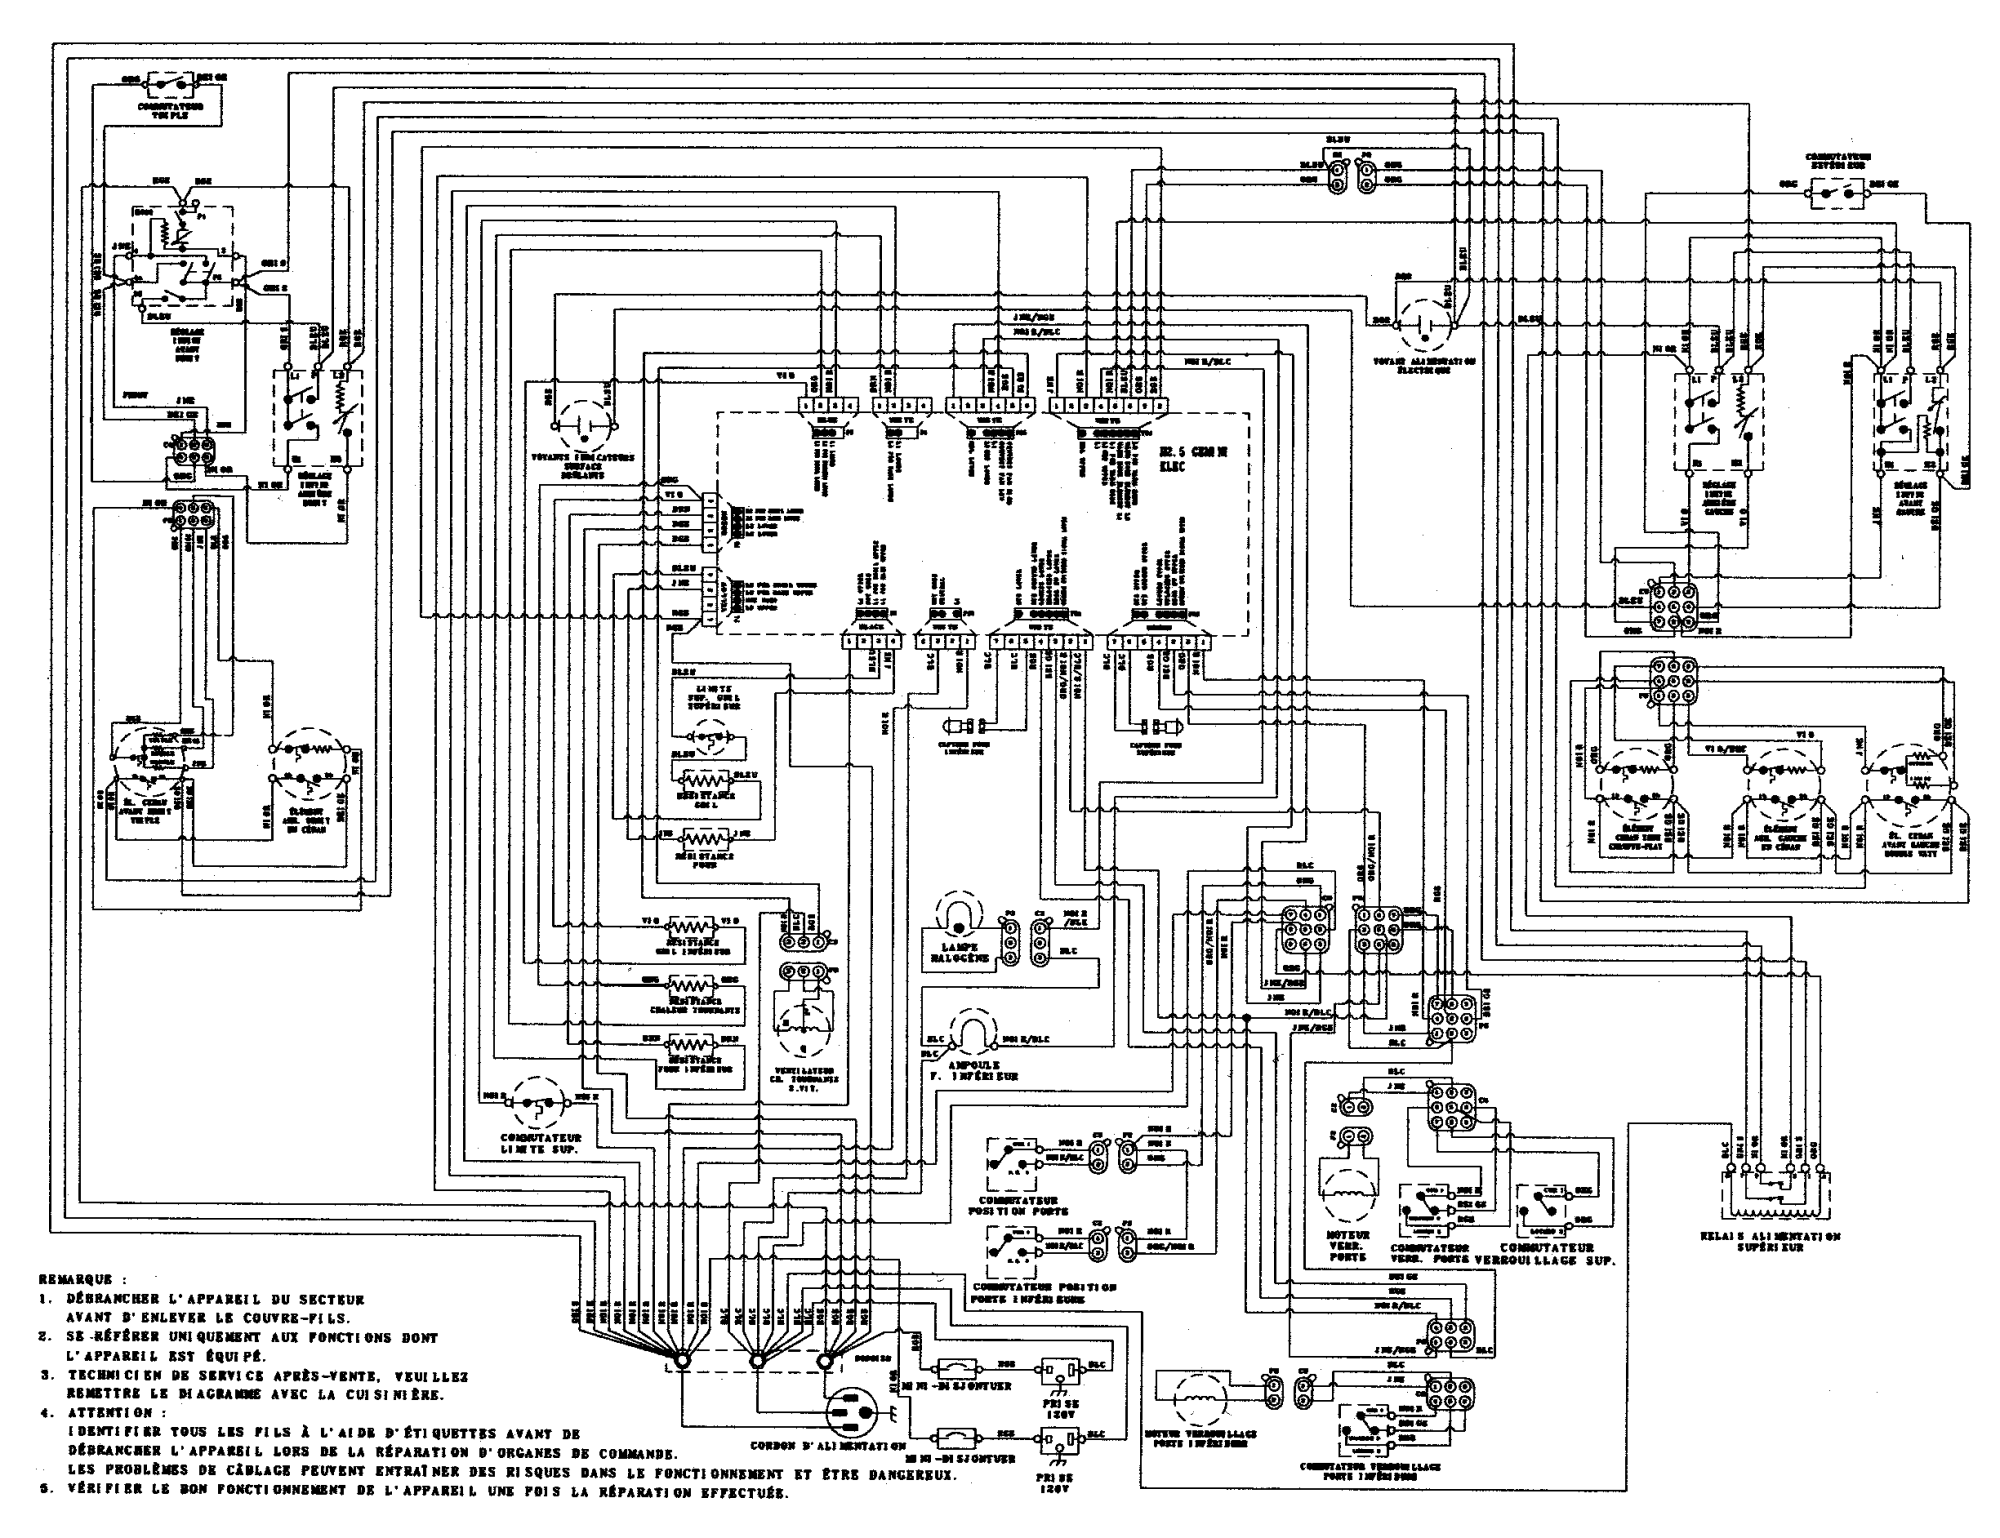 hight resolution of frc wiring diagram wiring diagrams frc encoder wiring diagram frc wiring diagram